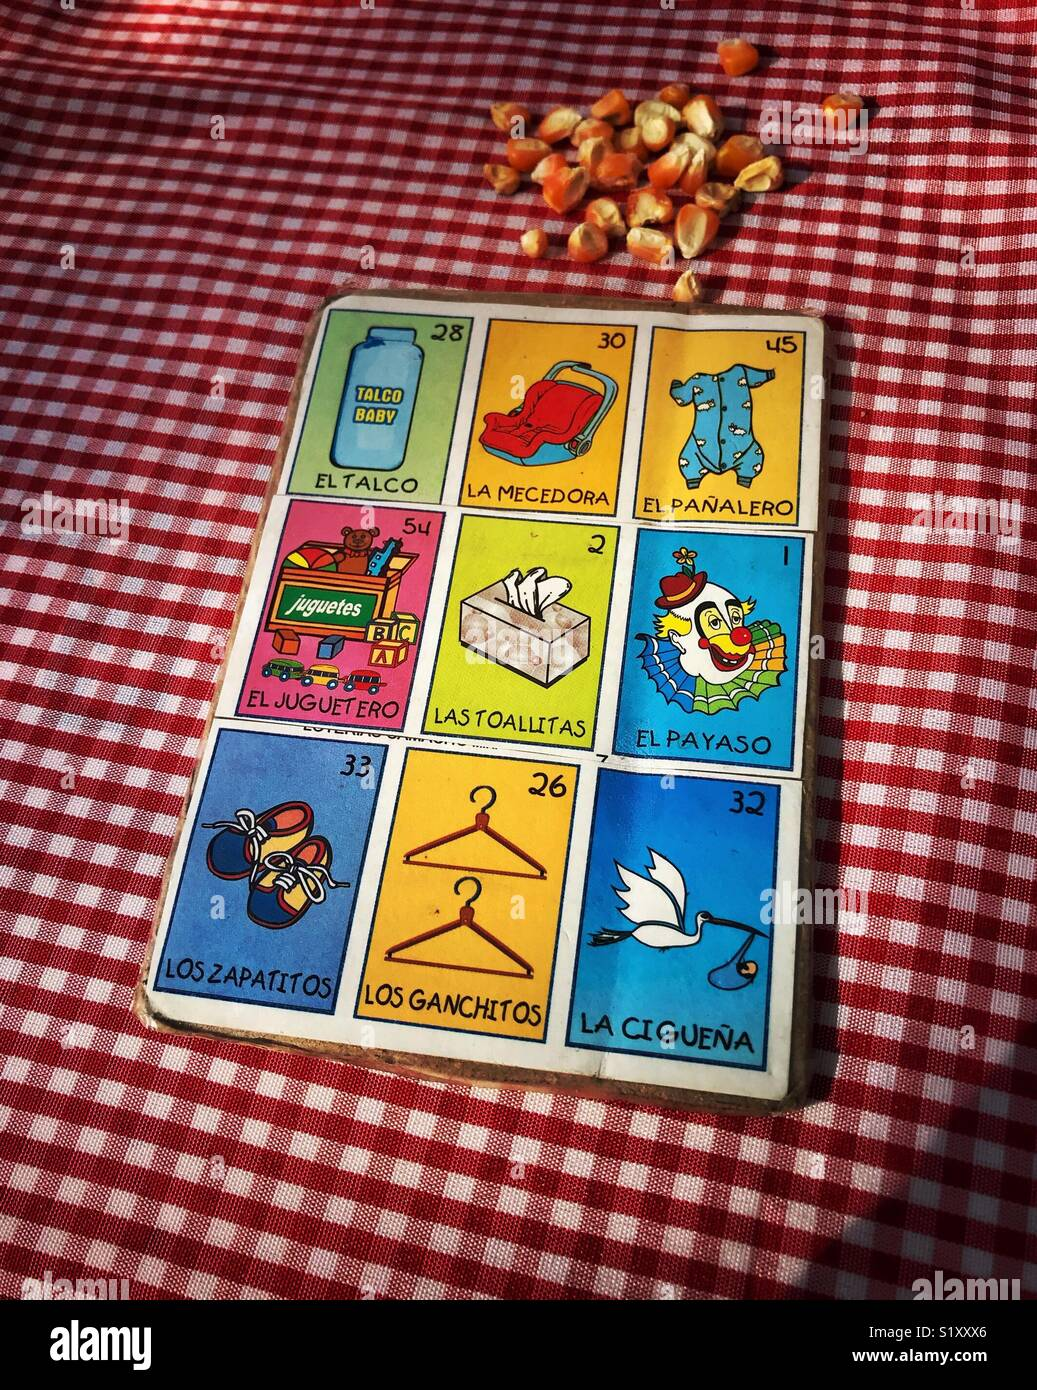 Loteria Stock Photos Loteria Stock Images Alamy